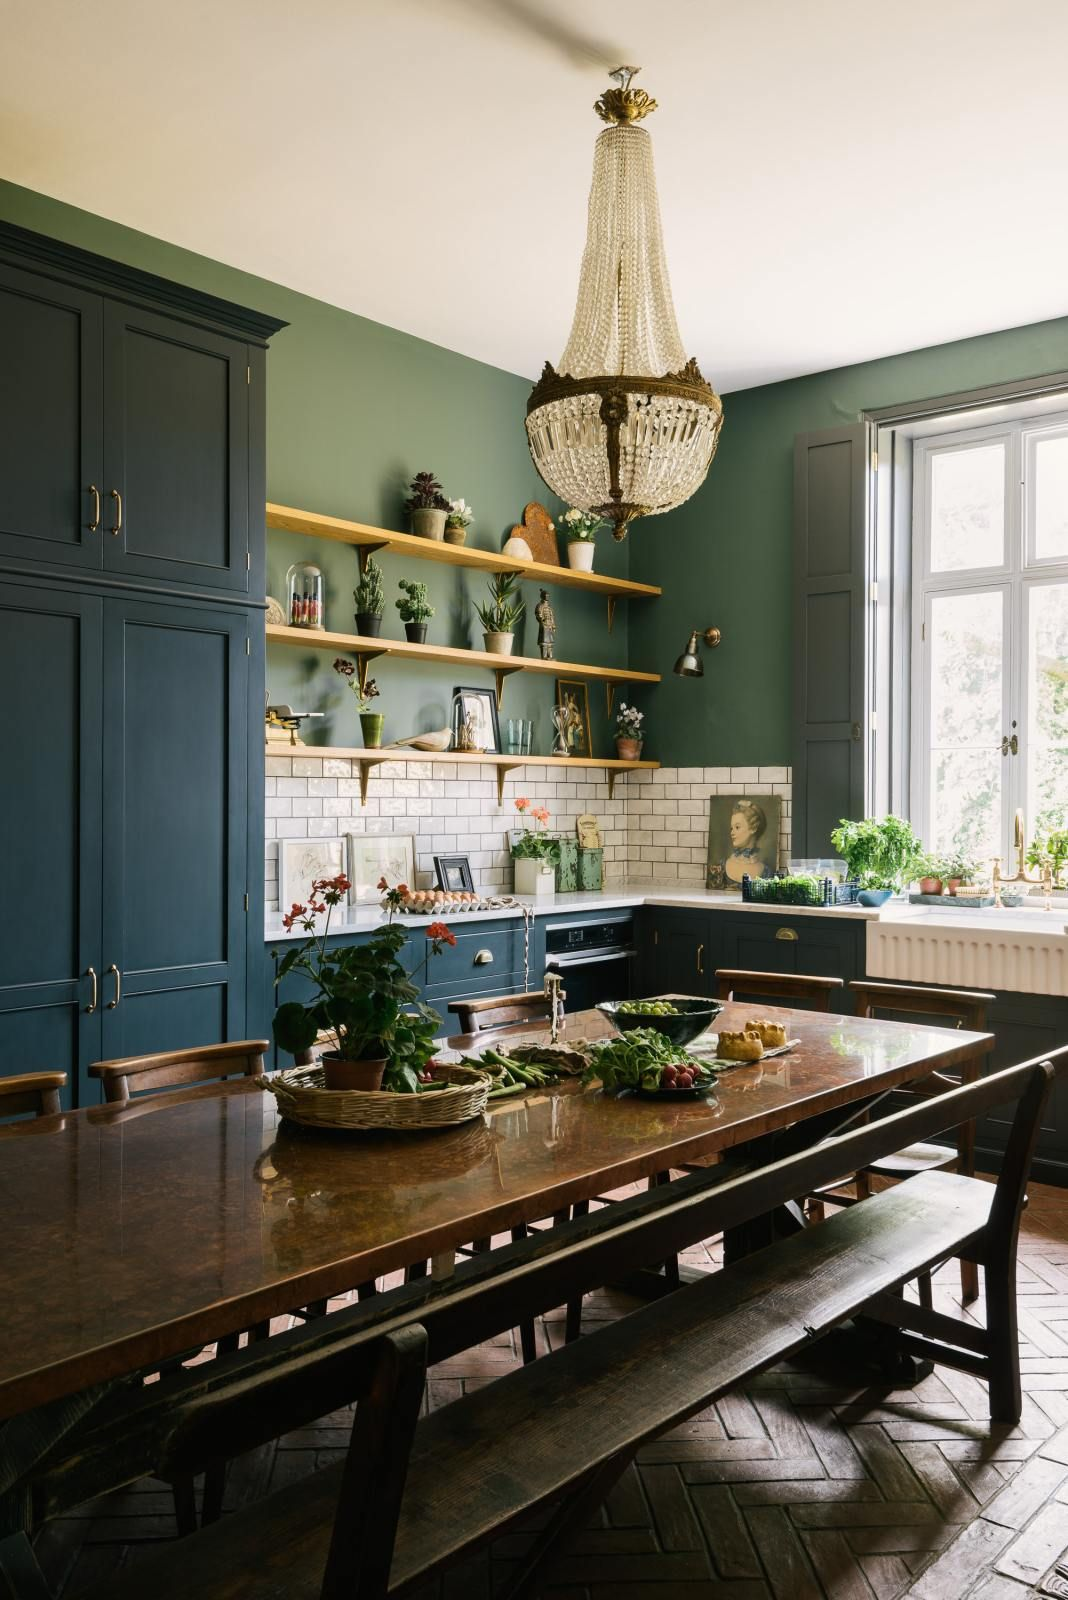 Classic blue kitchen in a Victorian rectory with terracotta floor and green walls with open shelves #wohnungküche